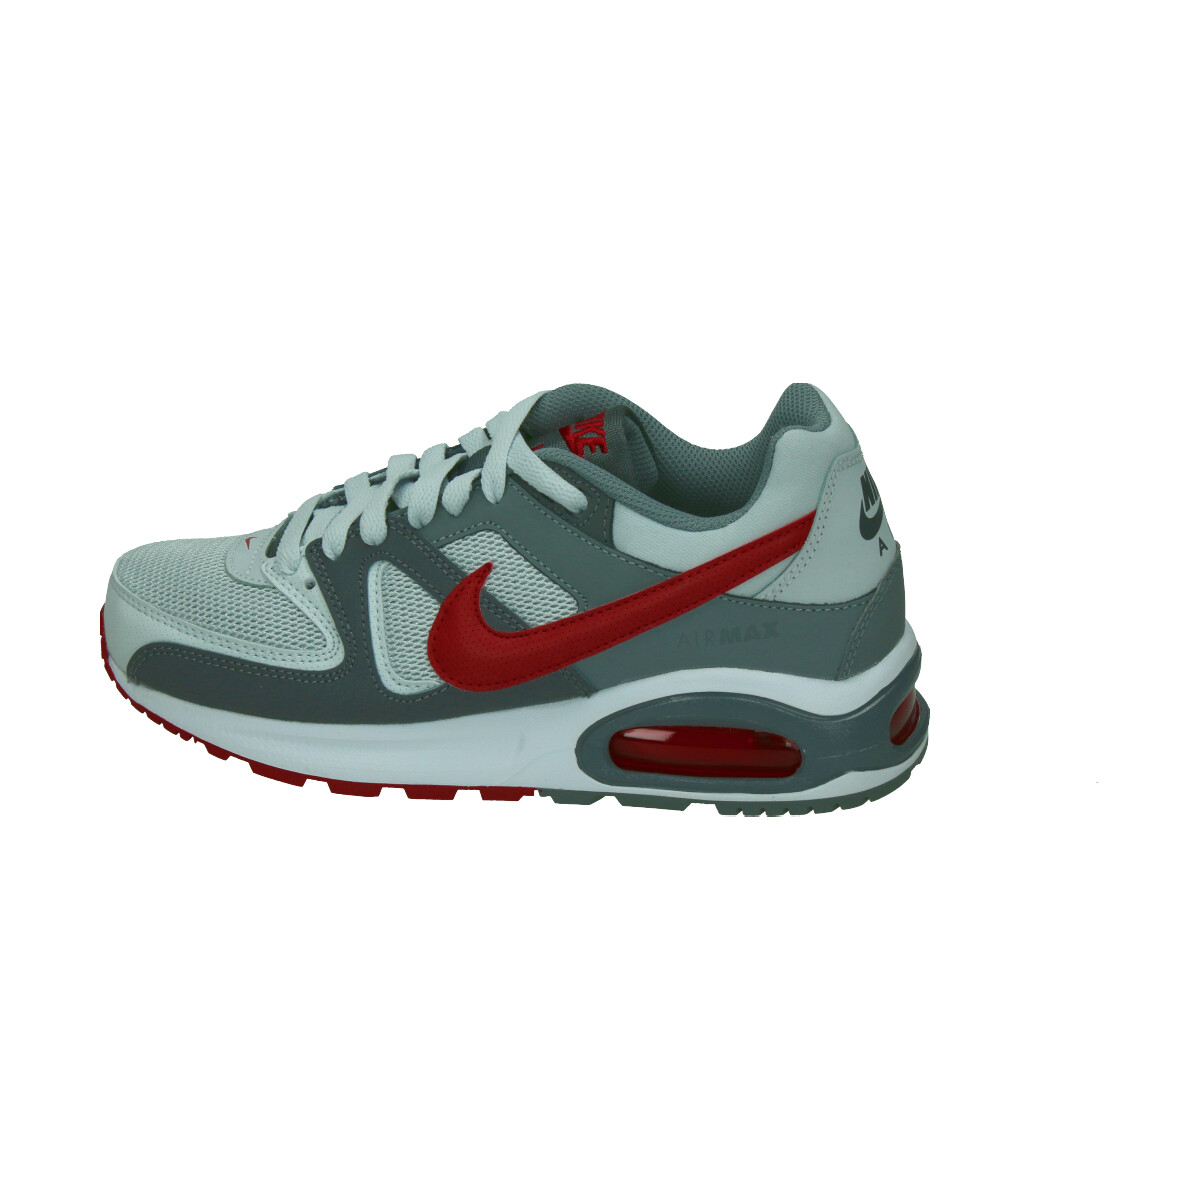 Sneakers Air Max Command PlatinumRed